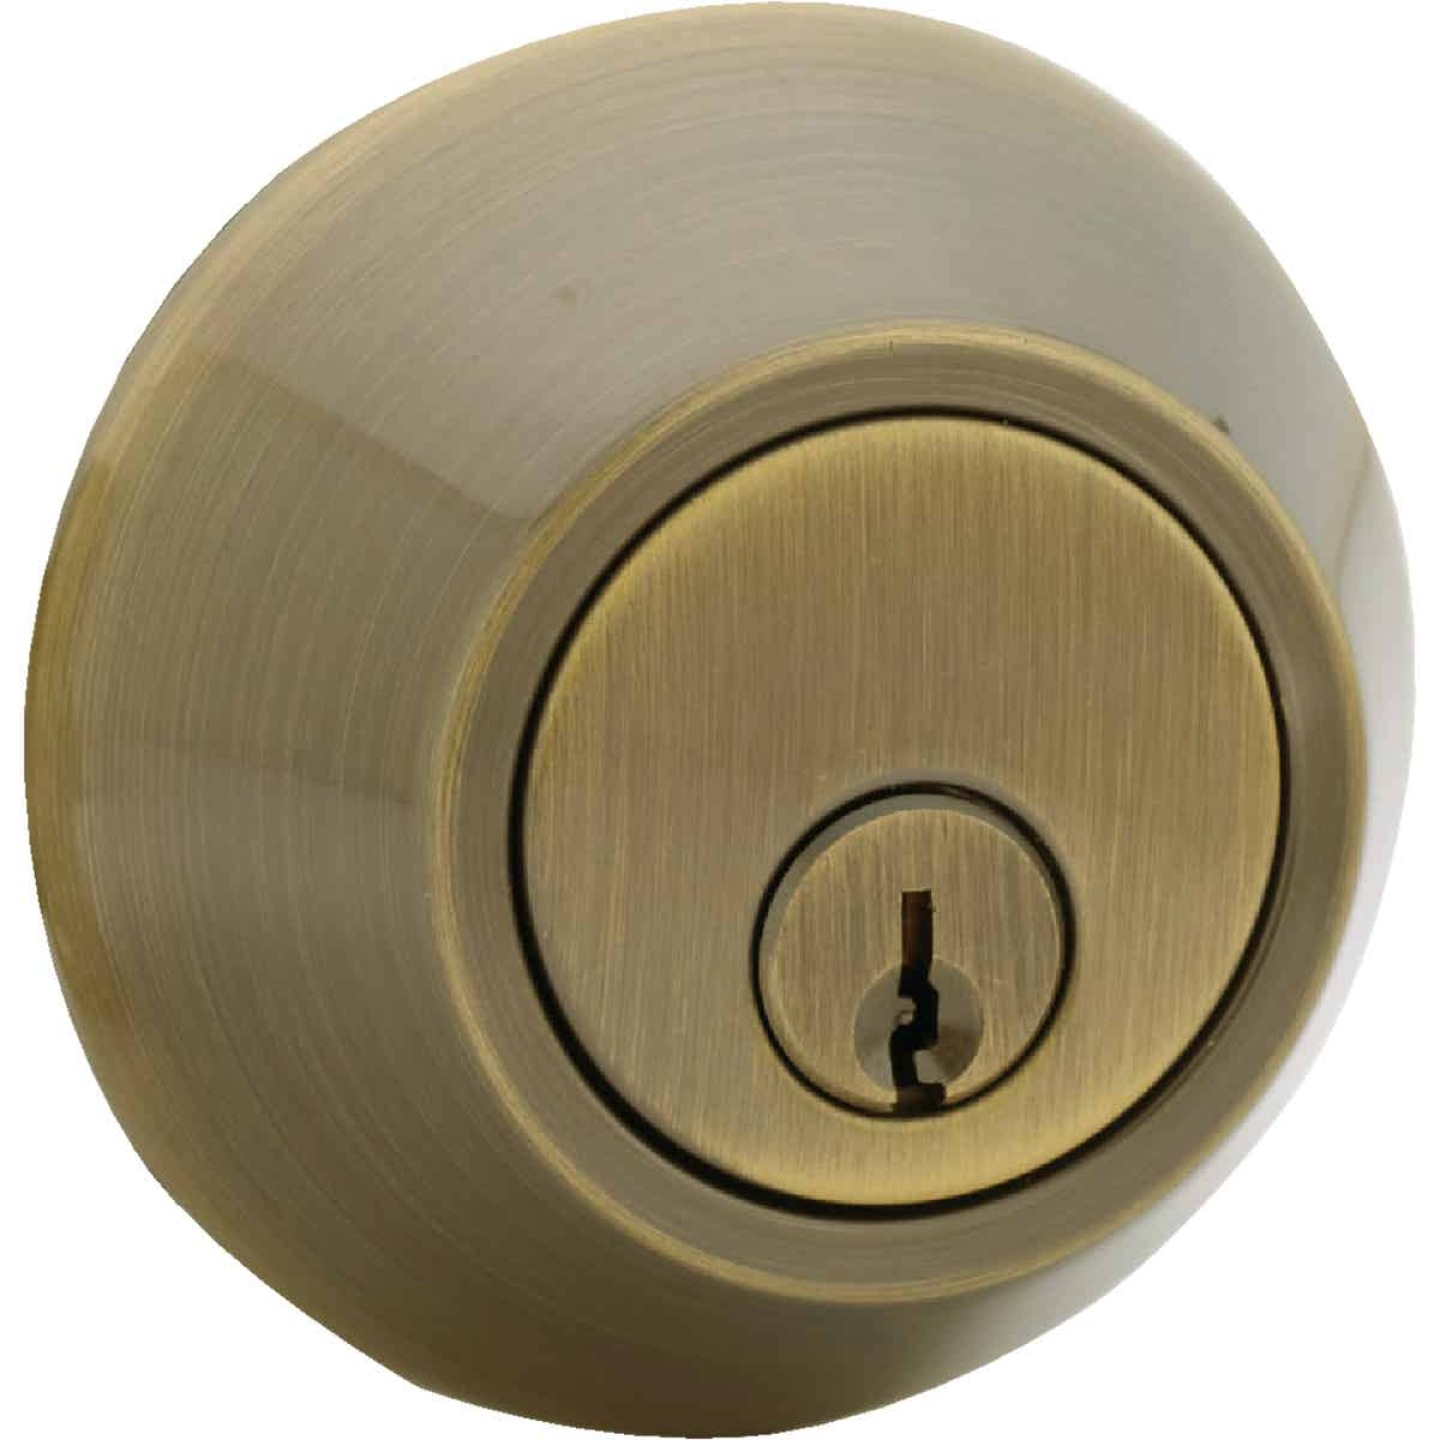 Steel Pro Antique Brass Single Cylinder Deadbolt Image 1